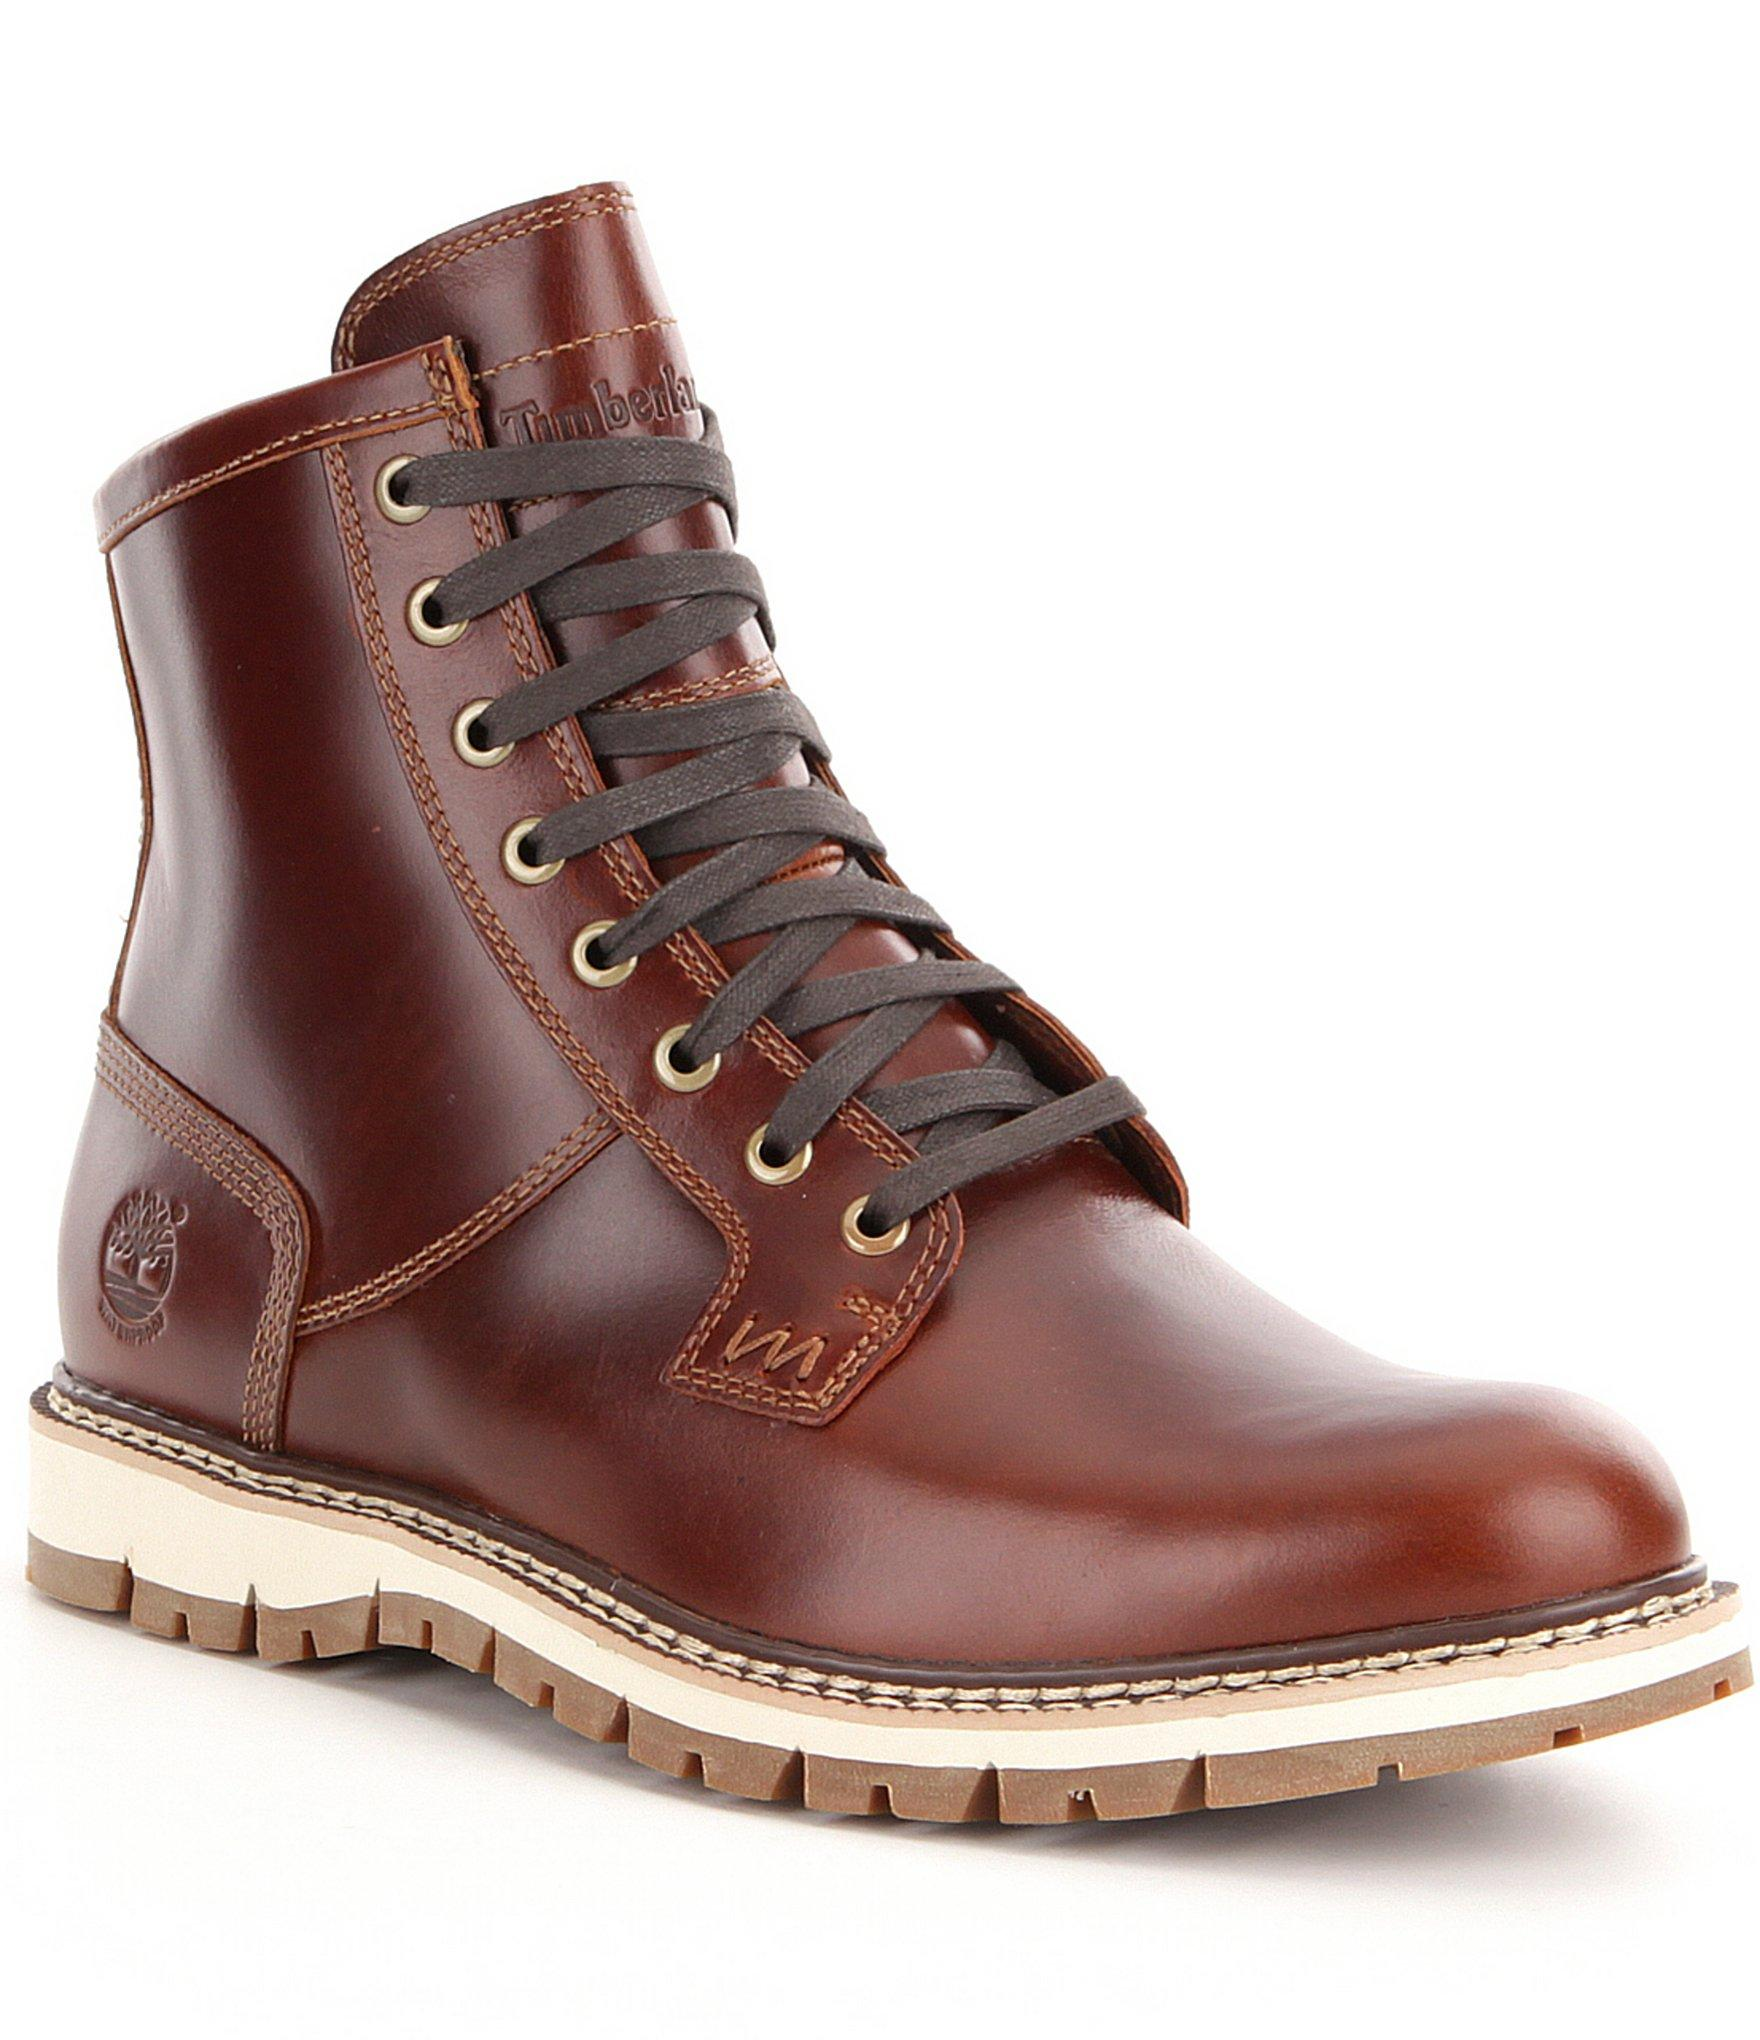 timberland men s britton hill waterproof boot in brown. Black Bedroom Furniture Sets. Home Design Ideas